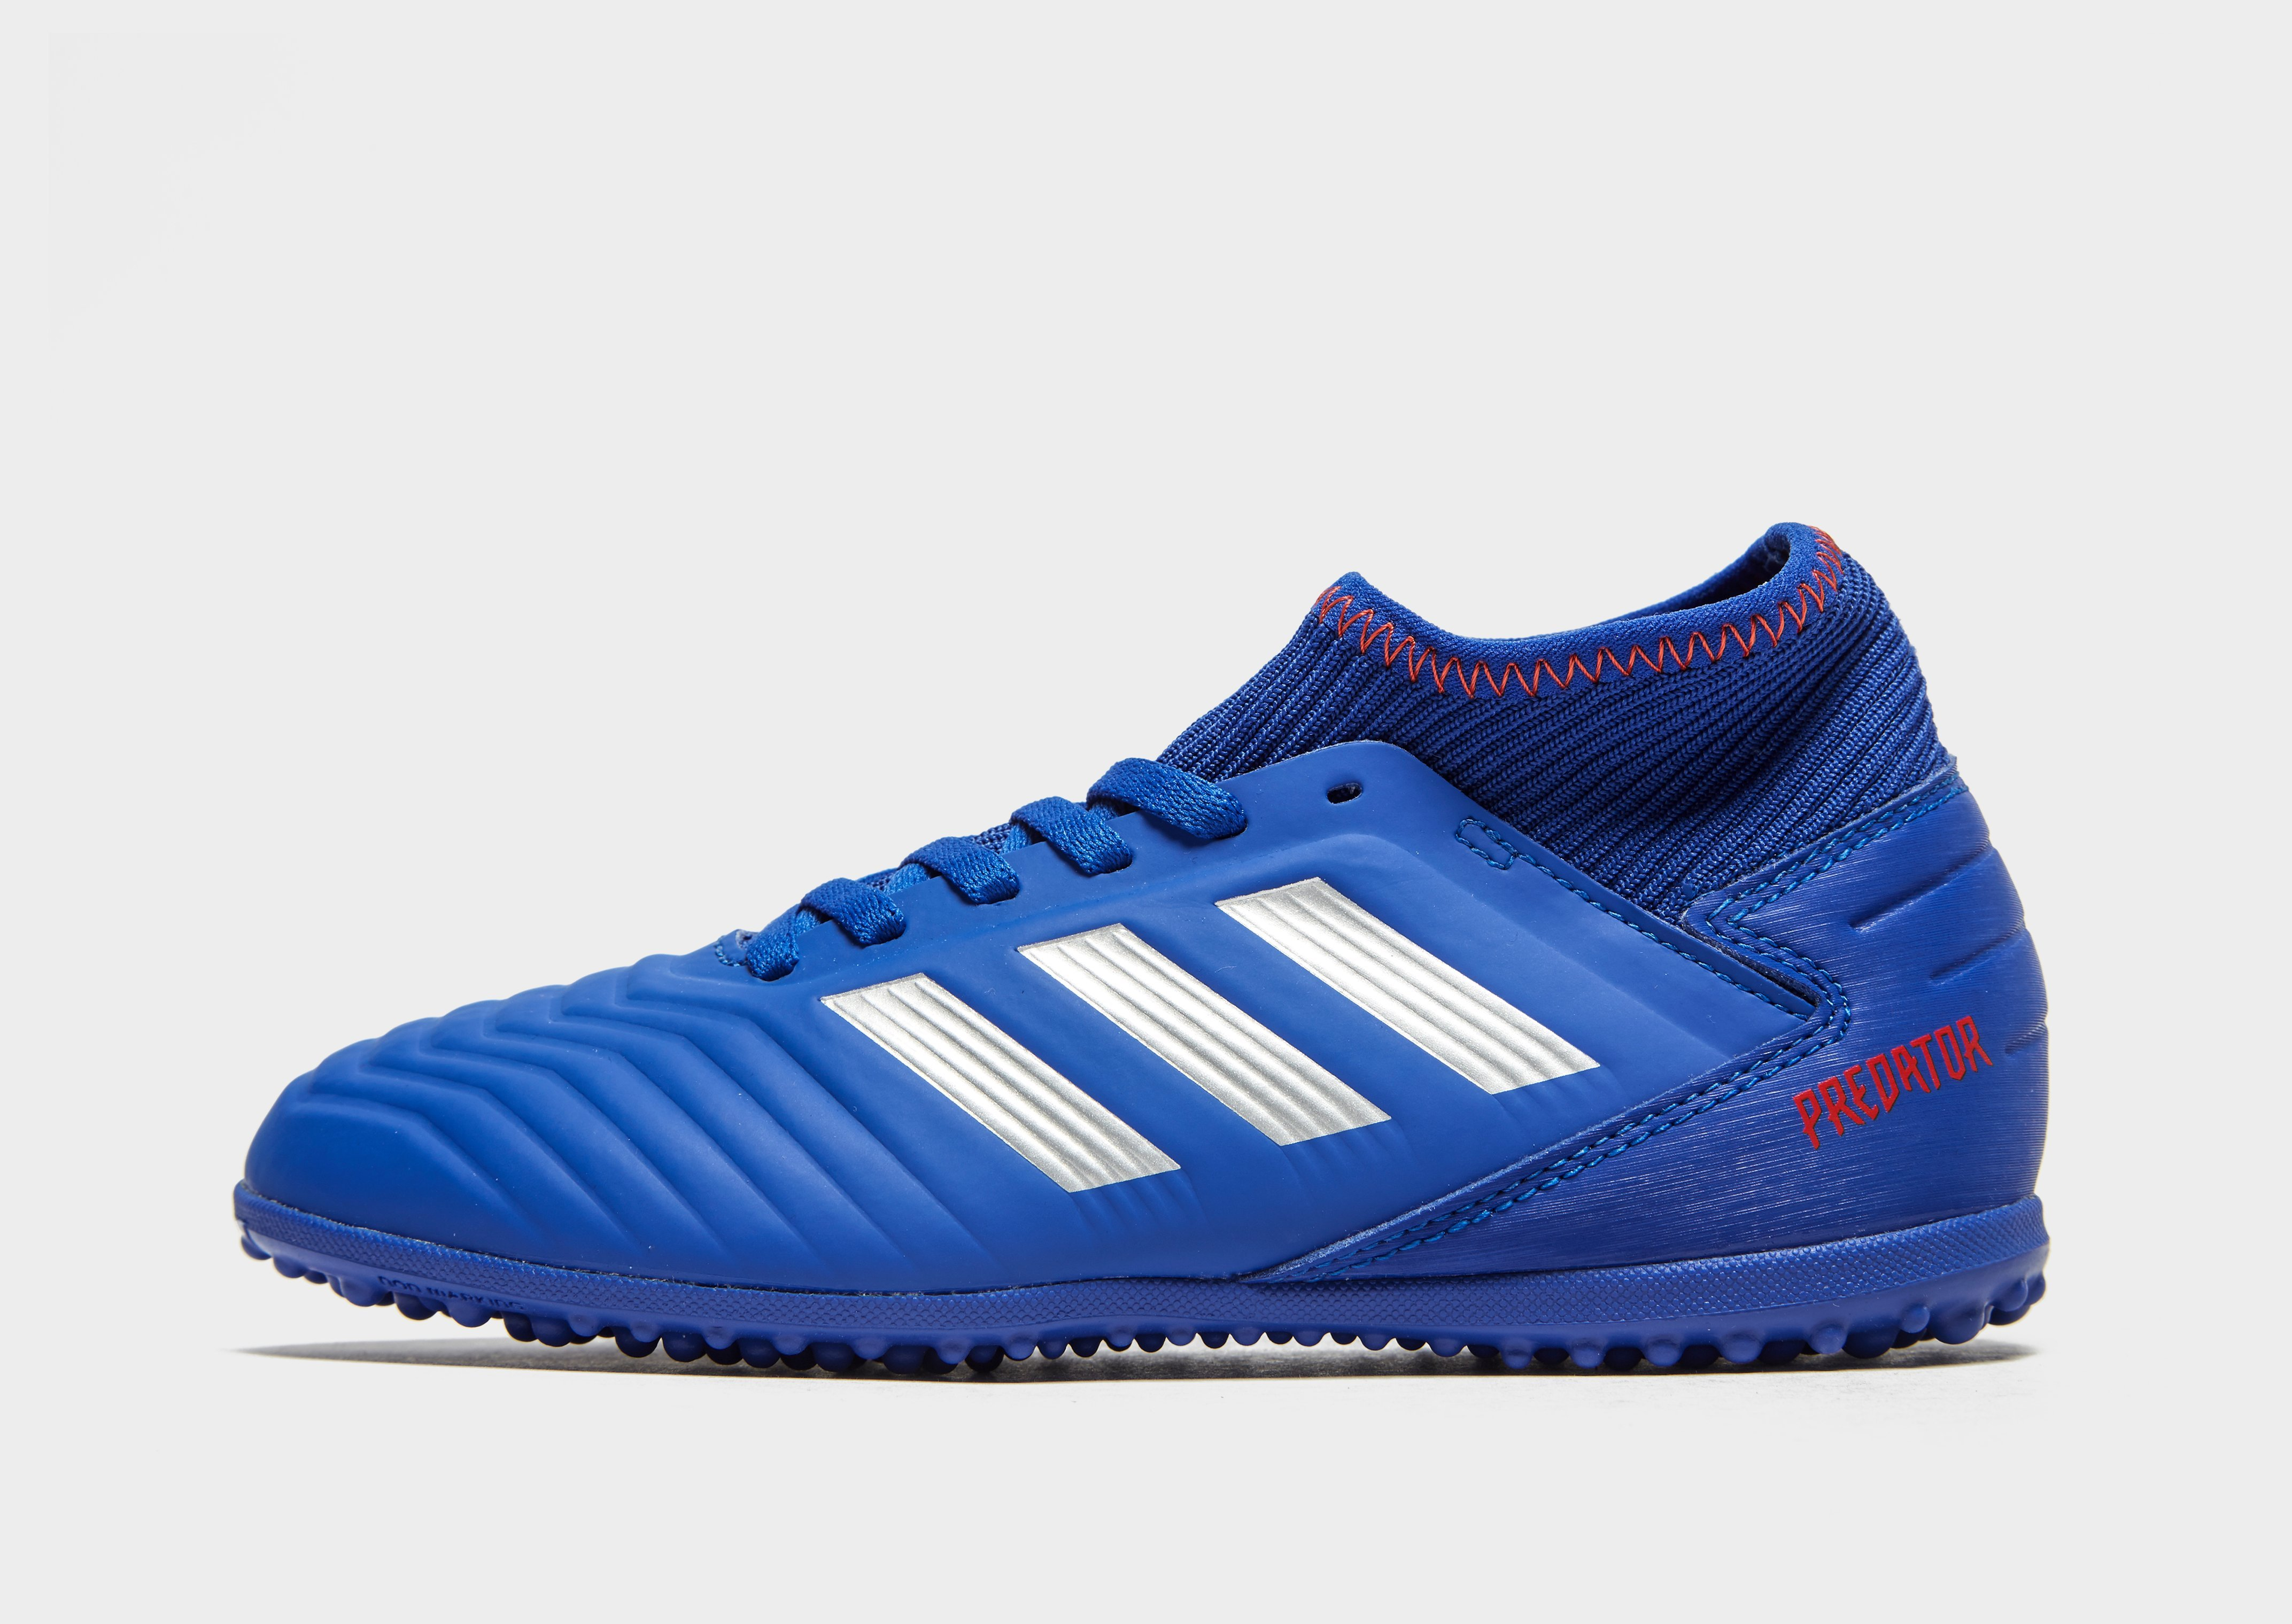 adidas Exhibit Predator 19.4 TF Children